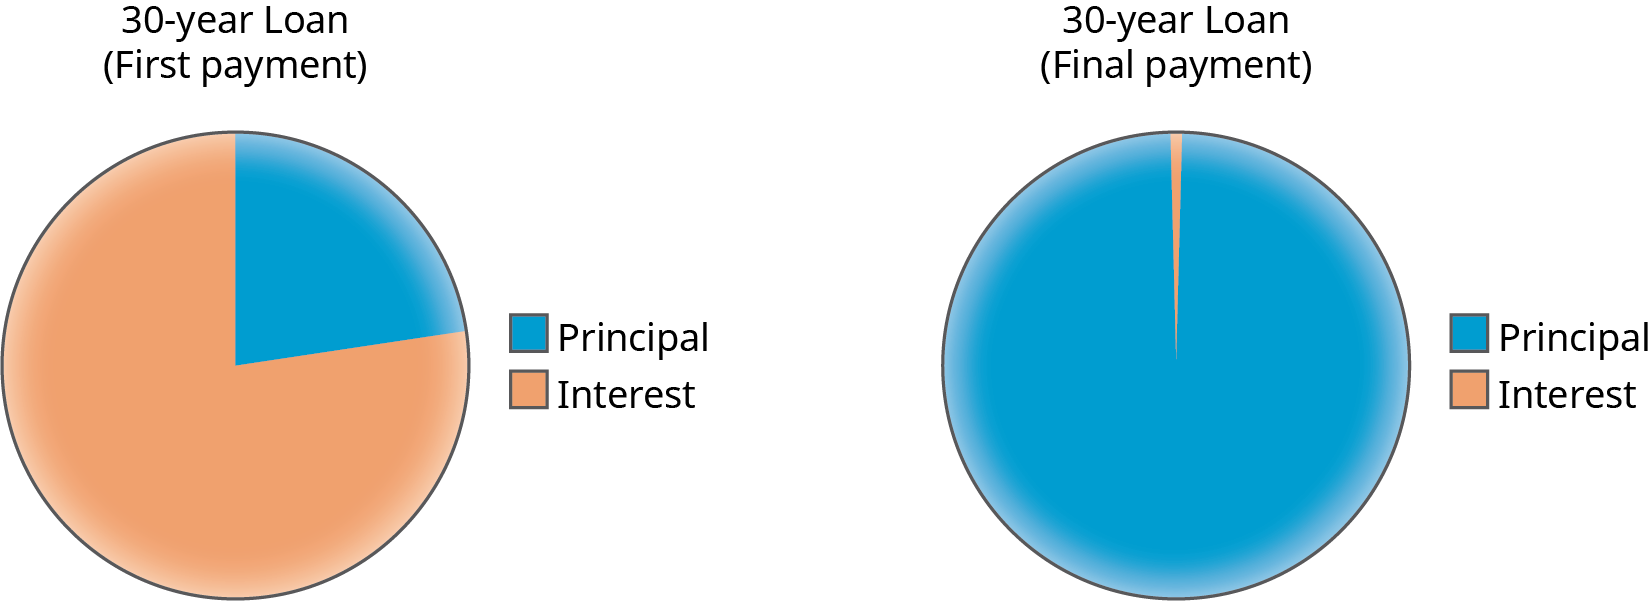 "Two pie charts showing the first and final payments on a 30-year loan. The pie chart on the left shows the first payment. A little over three quarters of the chart is ""Interest"" and the rest is ""Principal."" The pie chart on the right shows the final payment. The majority of the chart is ""Principal"" and a very small portion is ""Interest."""